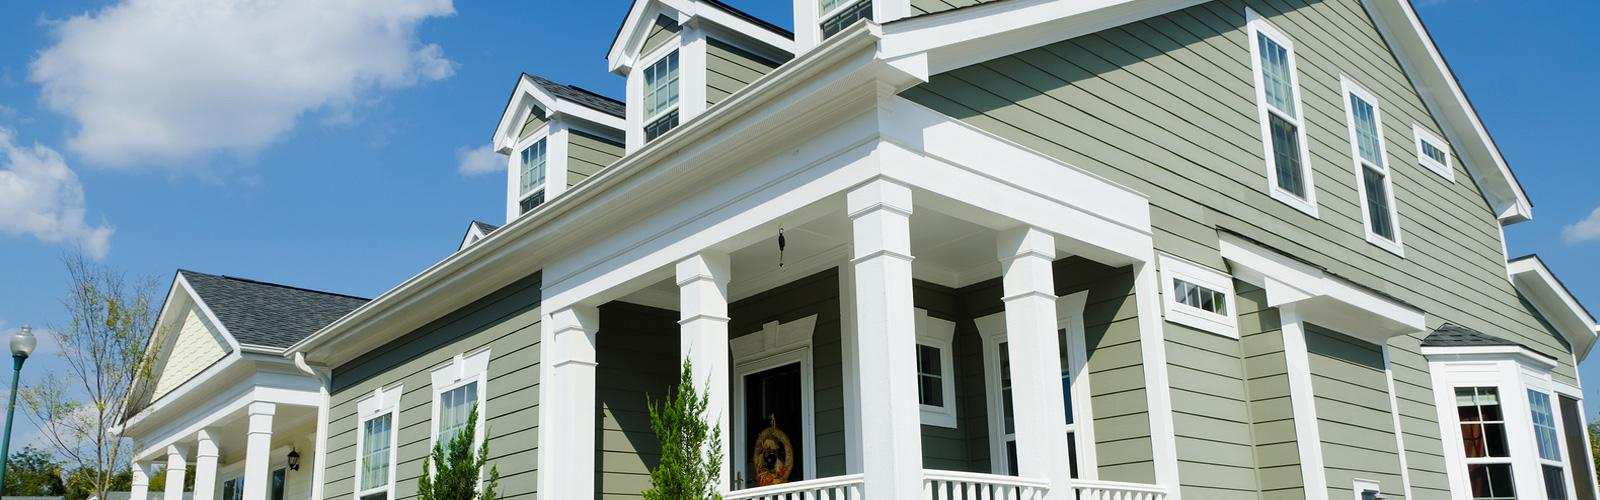 Best Siding Company Images